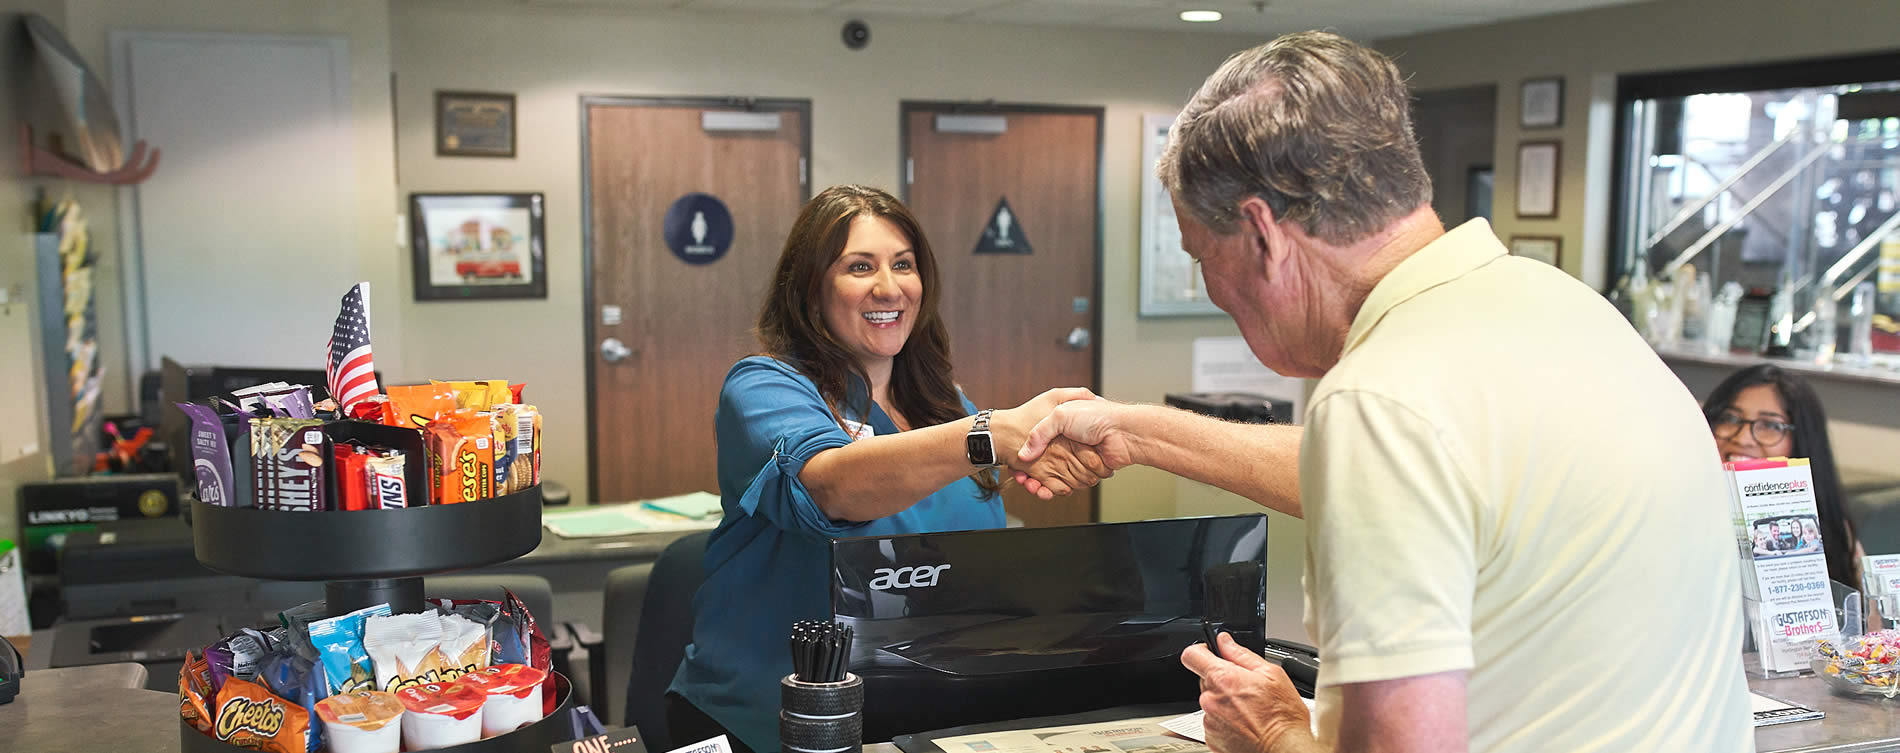 huntington beach auto repair shop with happy customer at front desk